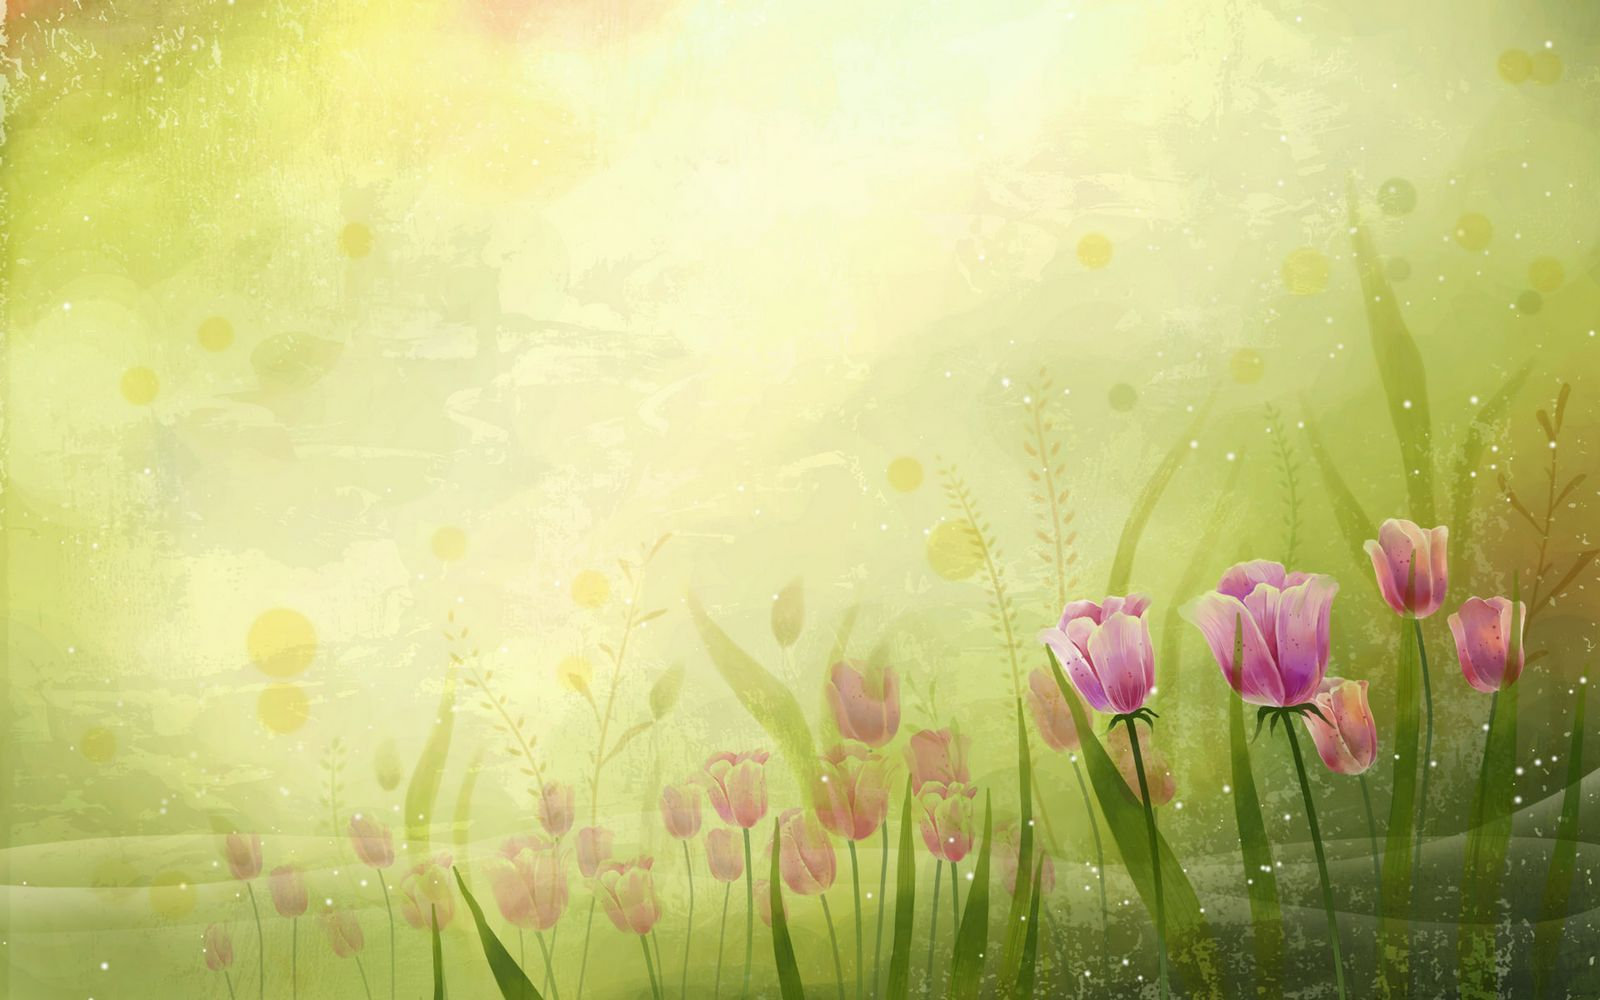 Free wallpaper backgrounds flowers image royalty free Flowers Wallpaper Background - WallpaperSafari image royalty free